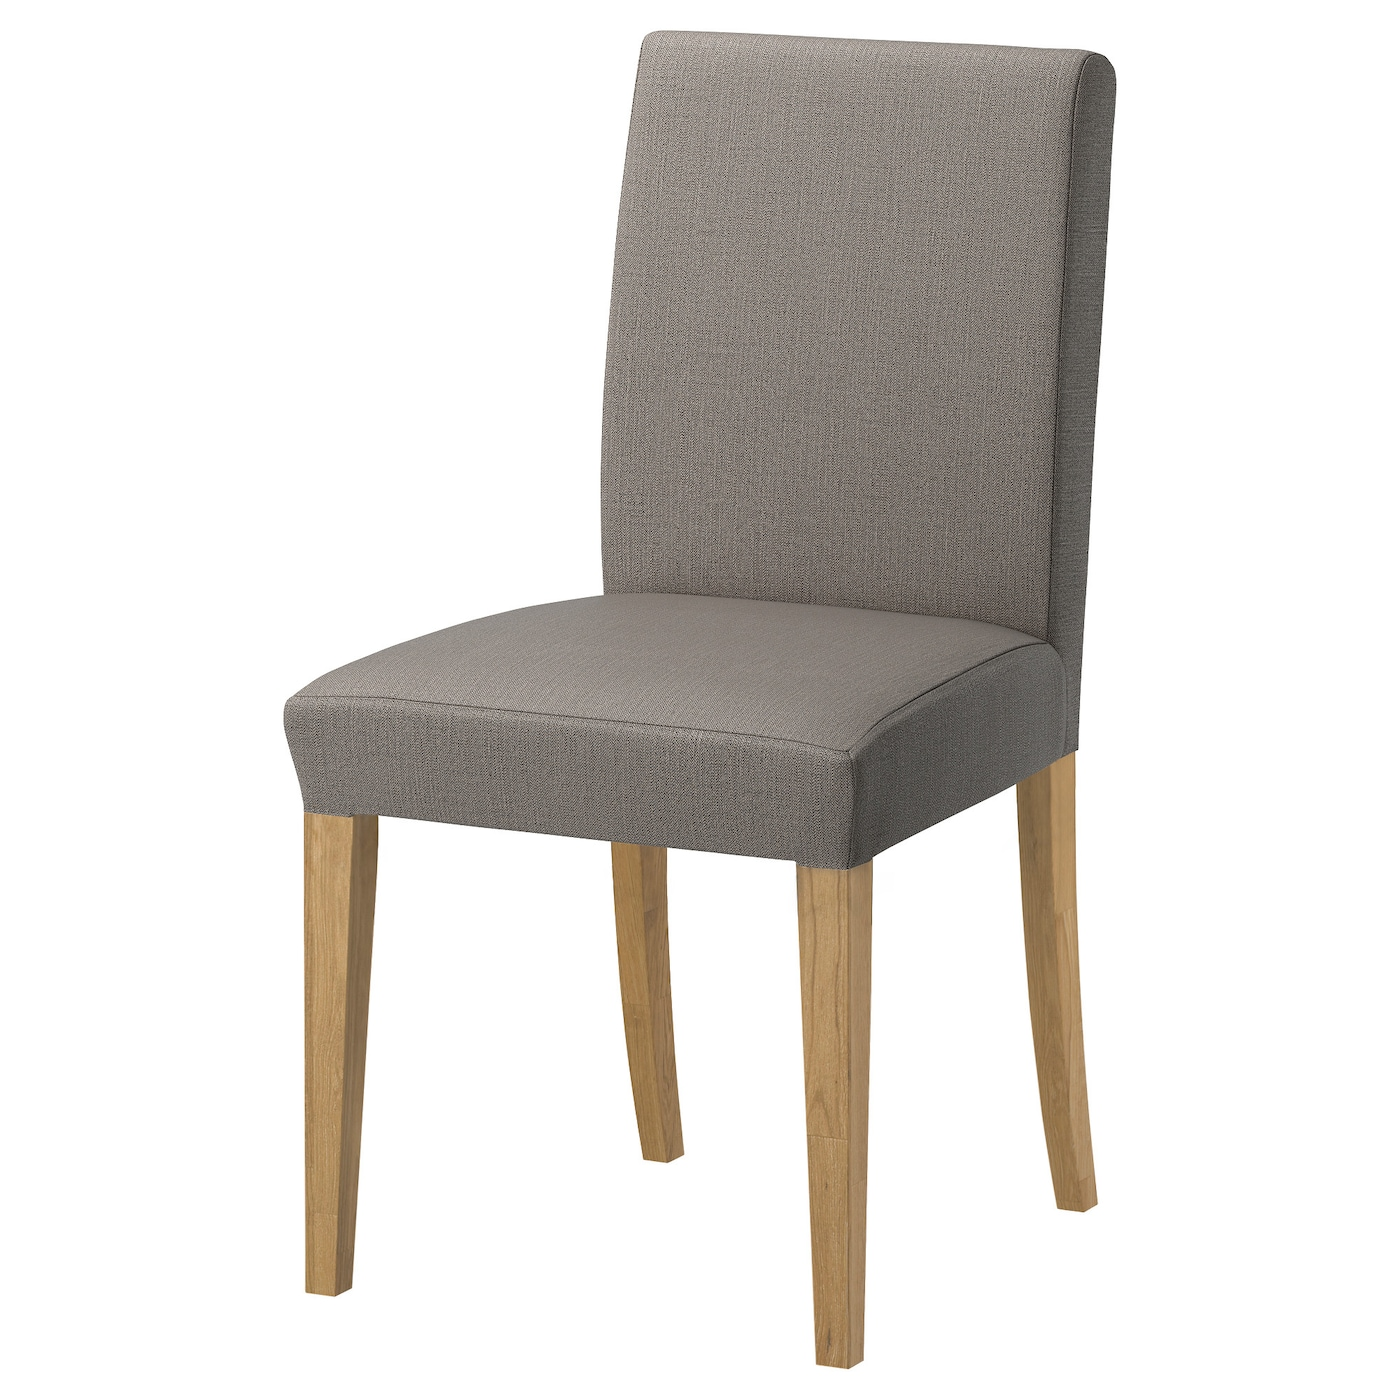 henriksdal chair oak nolhaga grey beige ikea. Black Bedroom Furniture Sets. Home Design Ideas